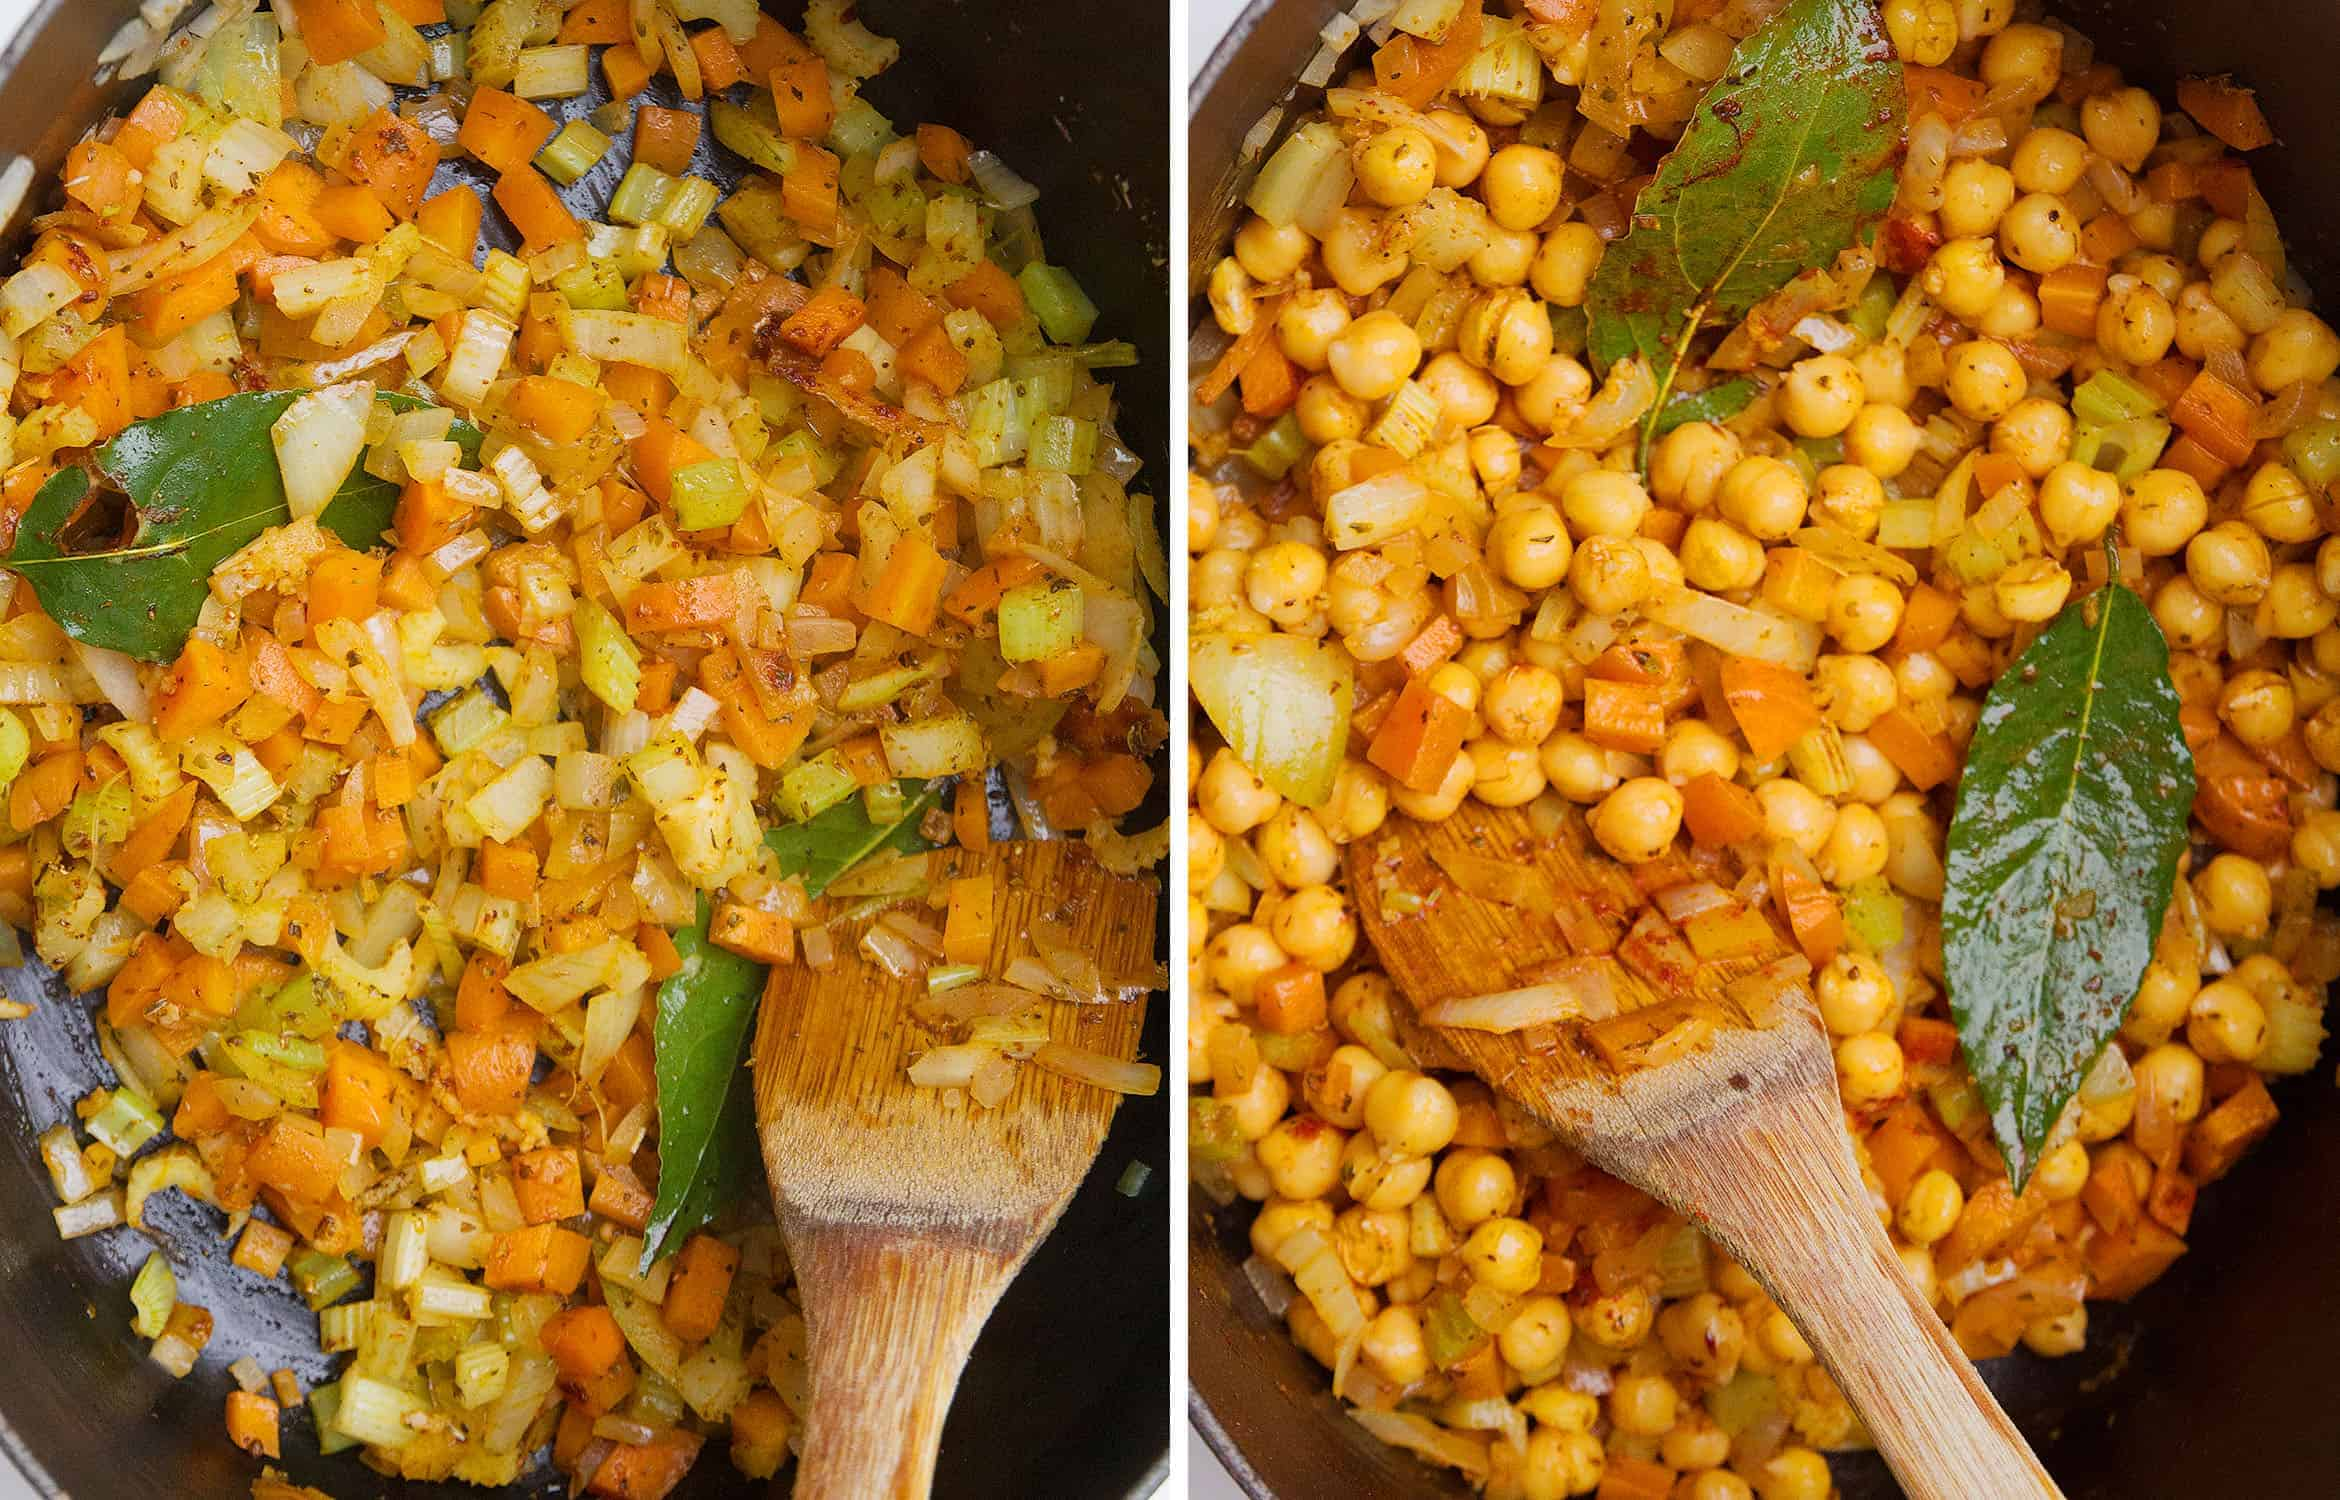 Diced vegetables and chickpeas stirred with a wooden spoon in a black casserole.